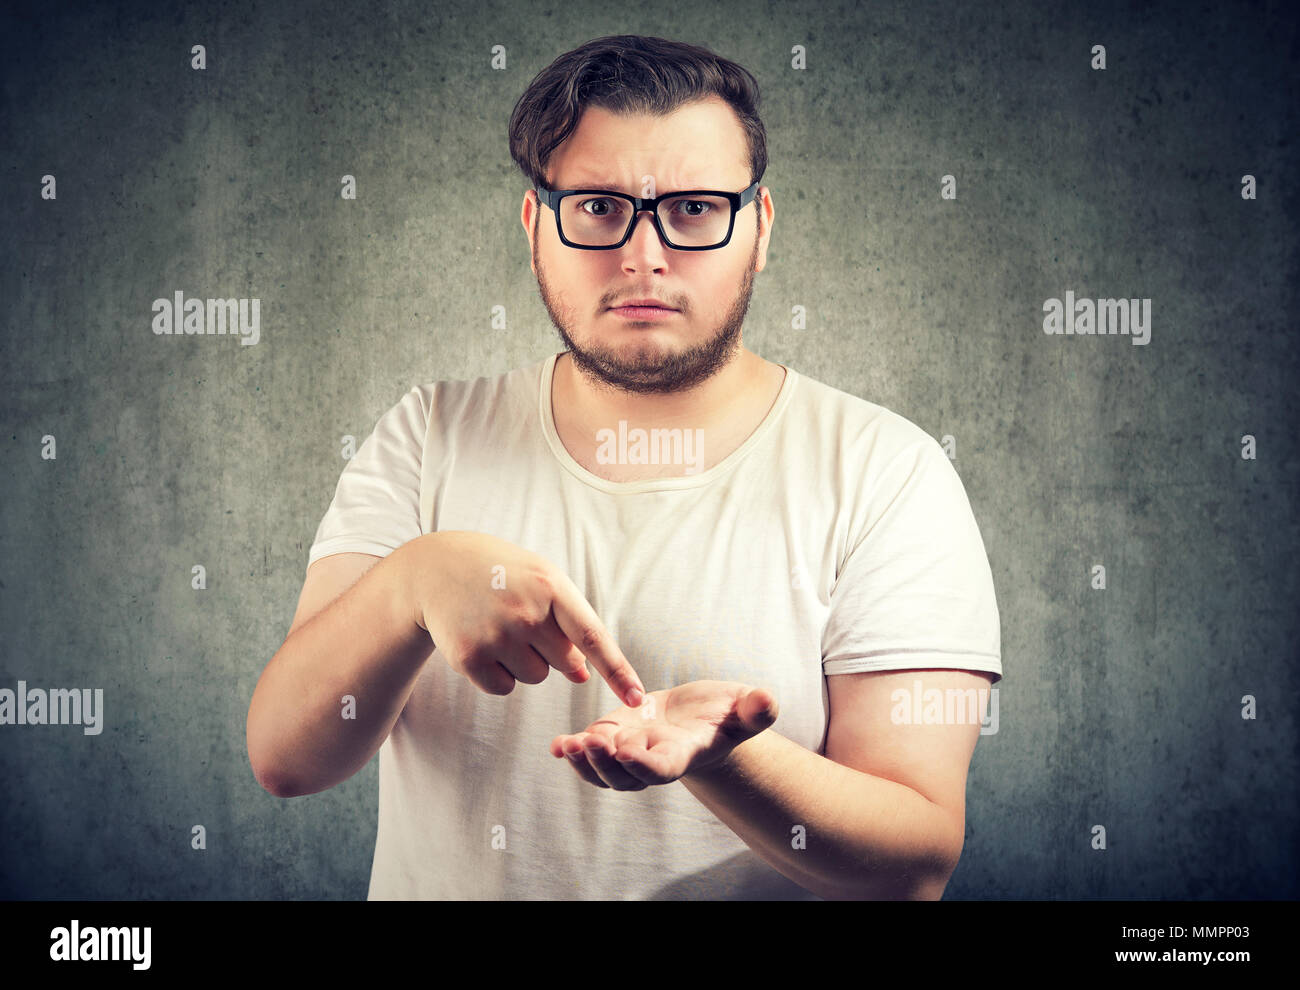 Young serious chubby man asking for more money to pay back debt - Stock Image